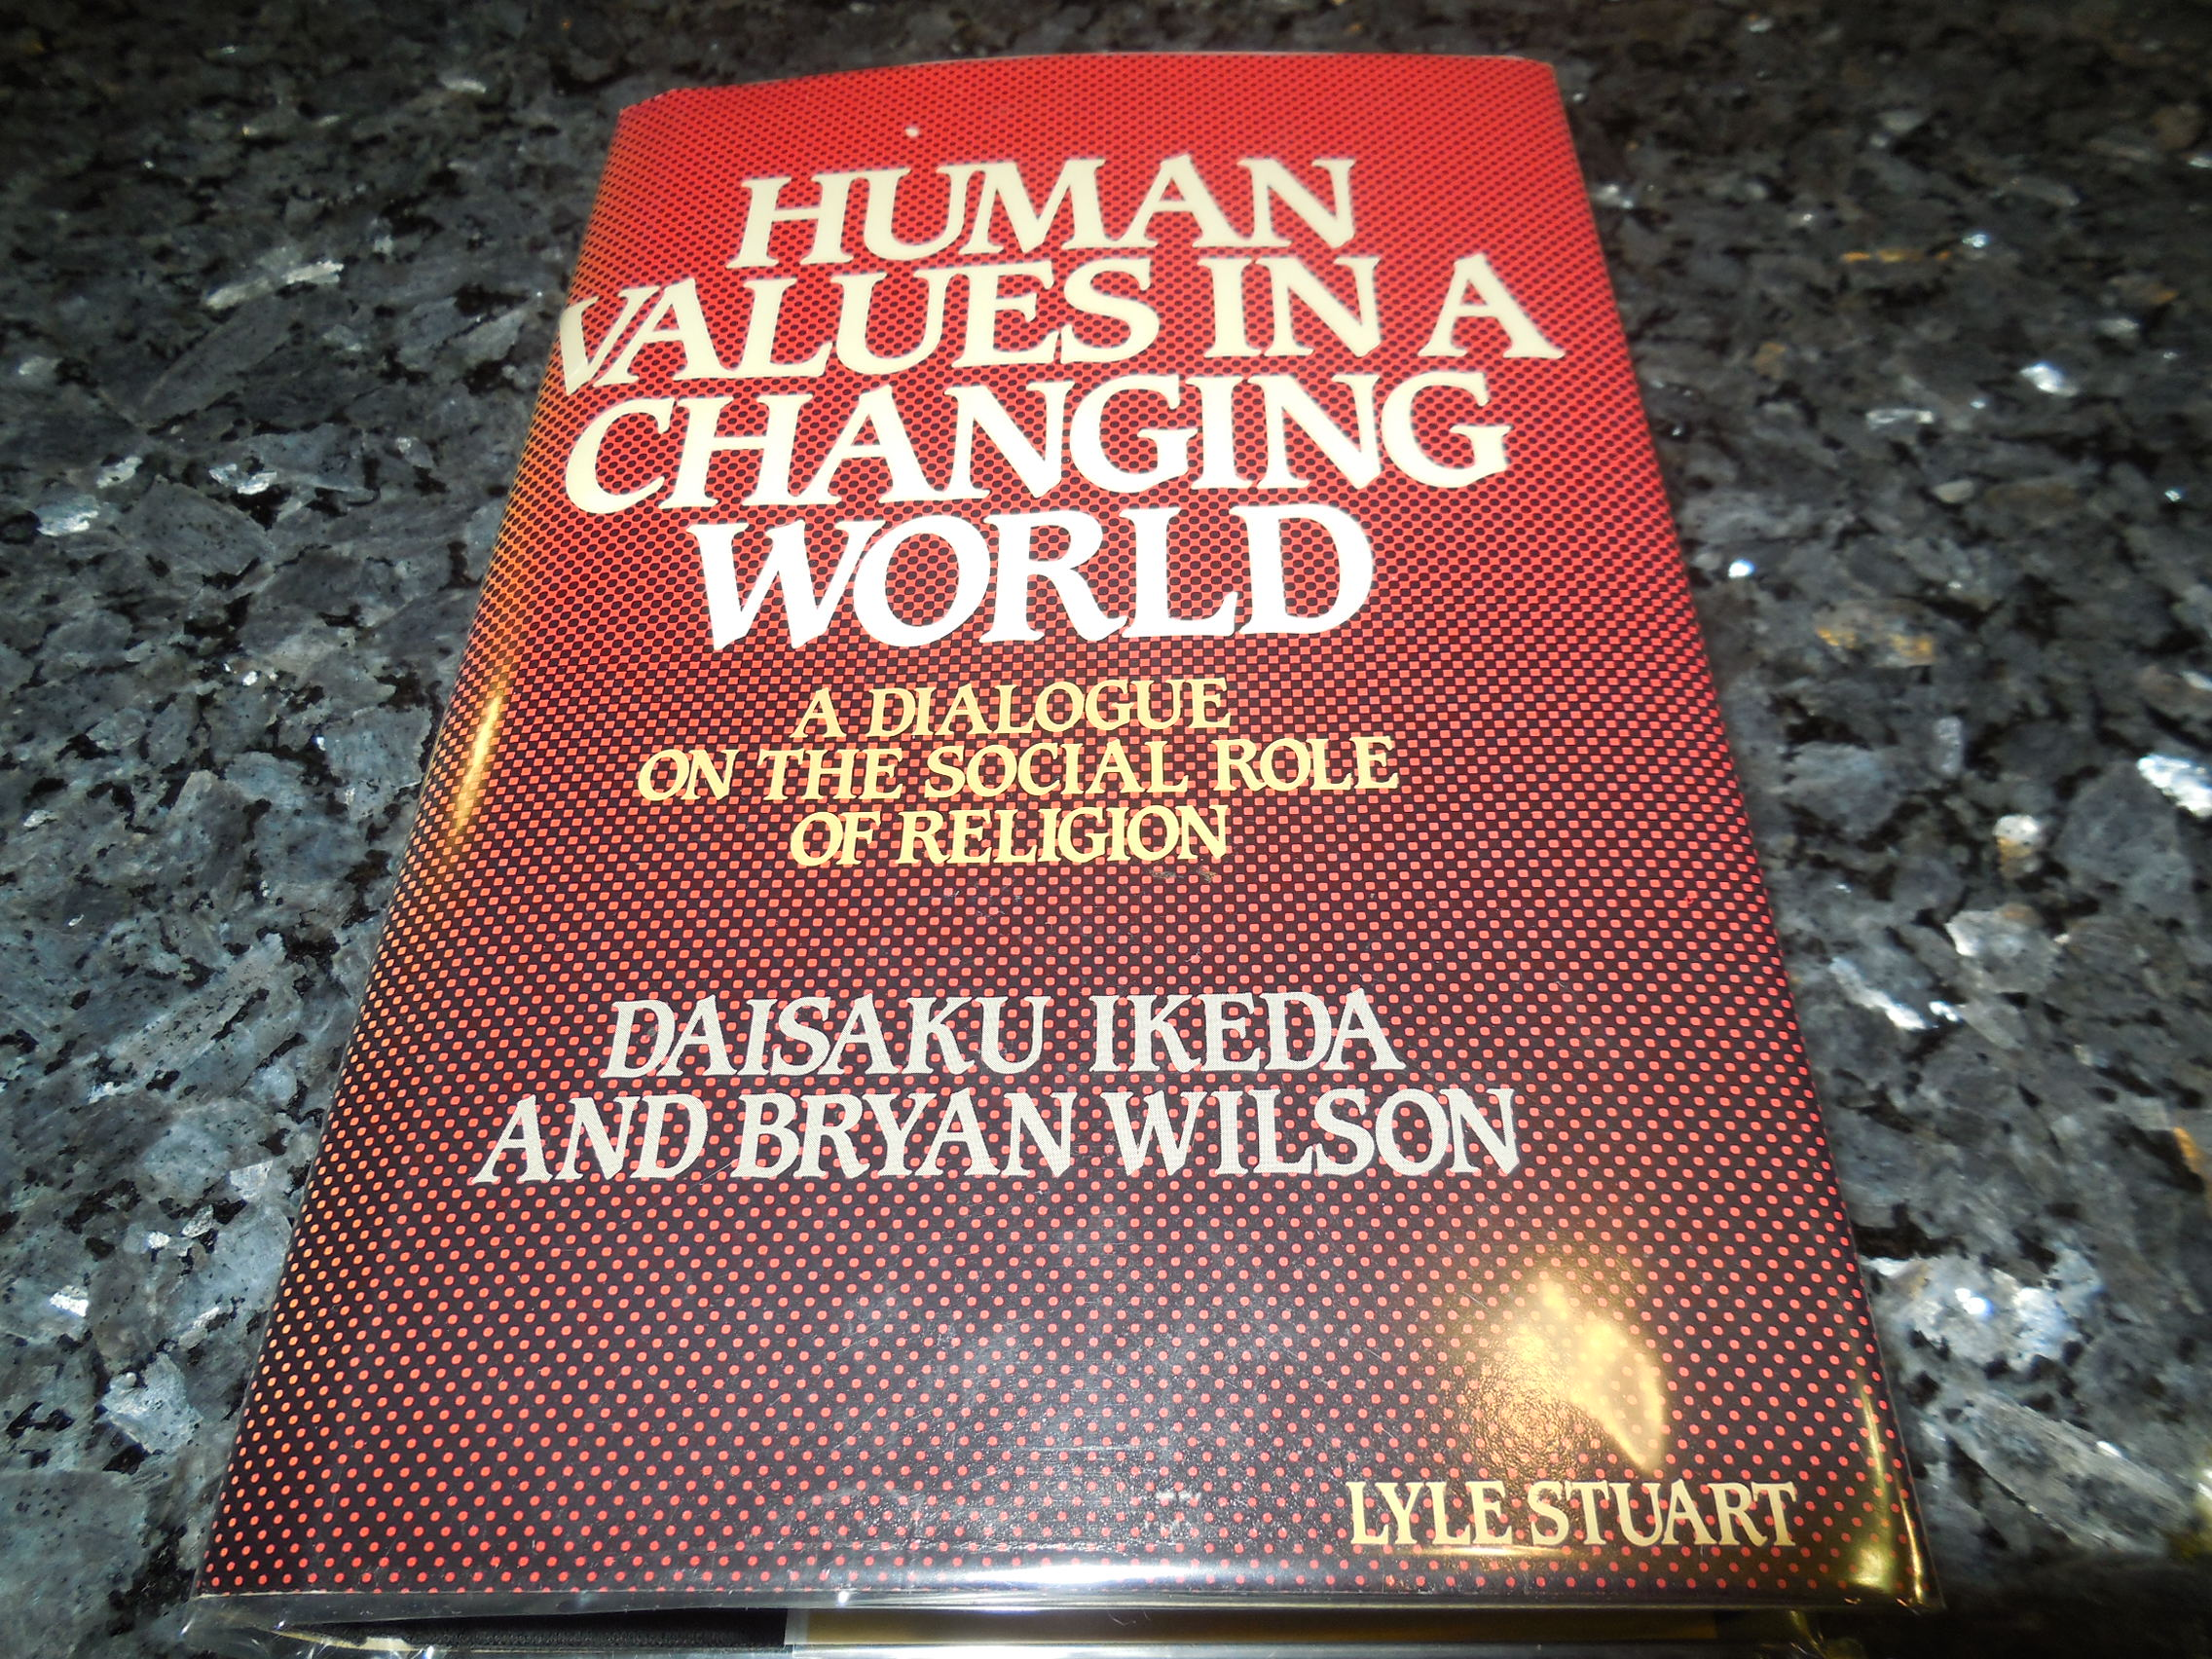 Image for Human Values in a Changing World: A Dialogue on the Social Role of Religion